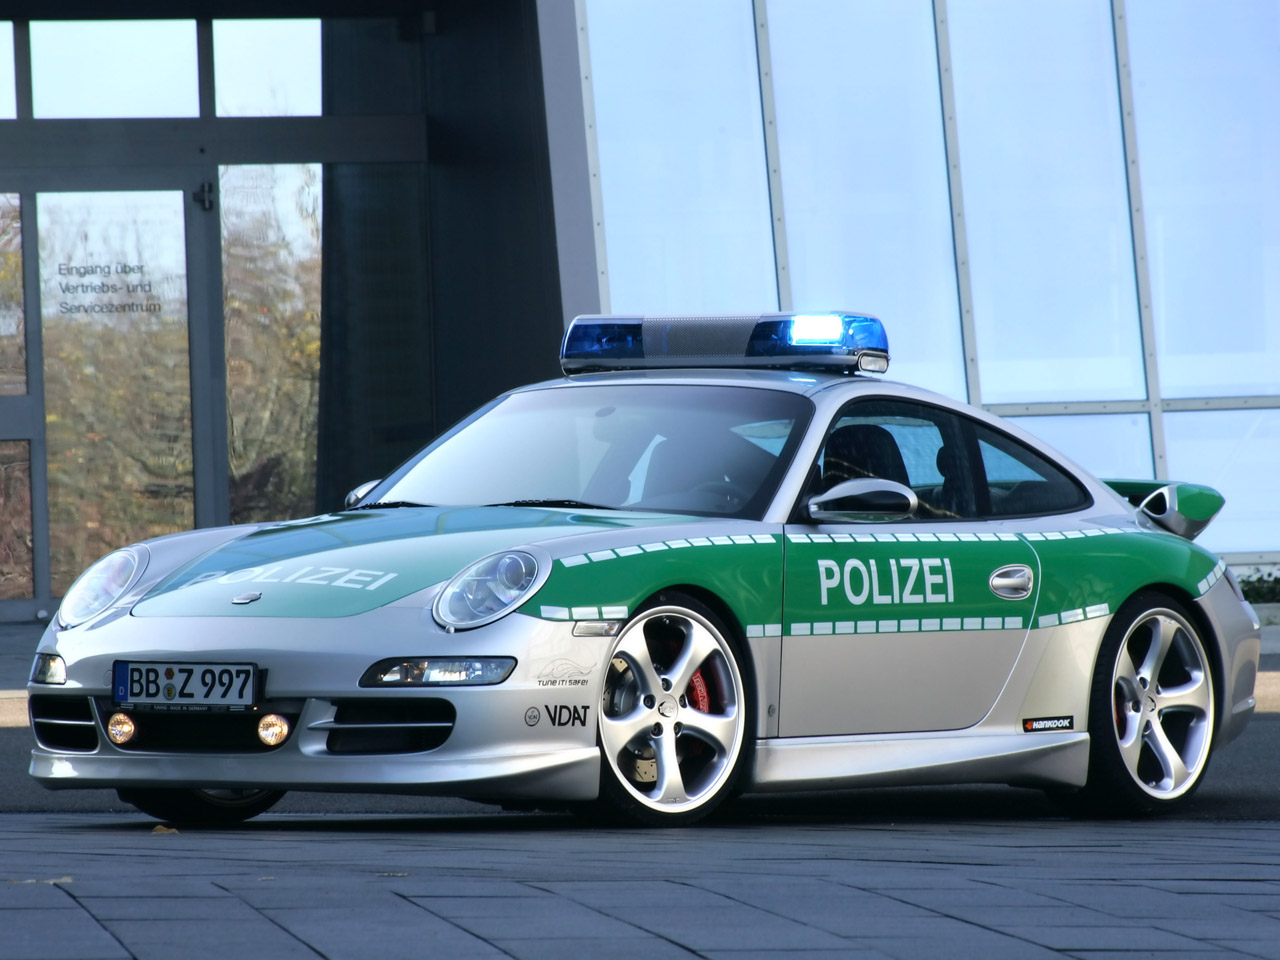 Police Car Tuned